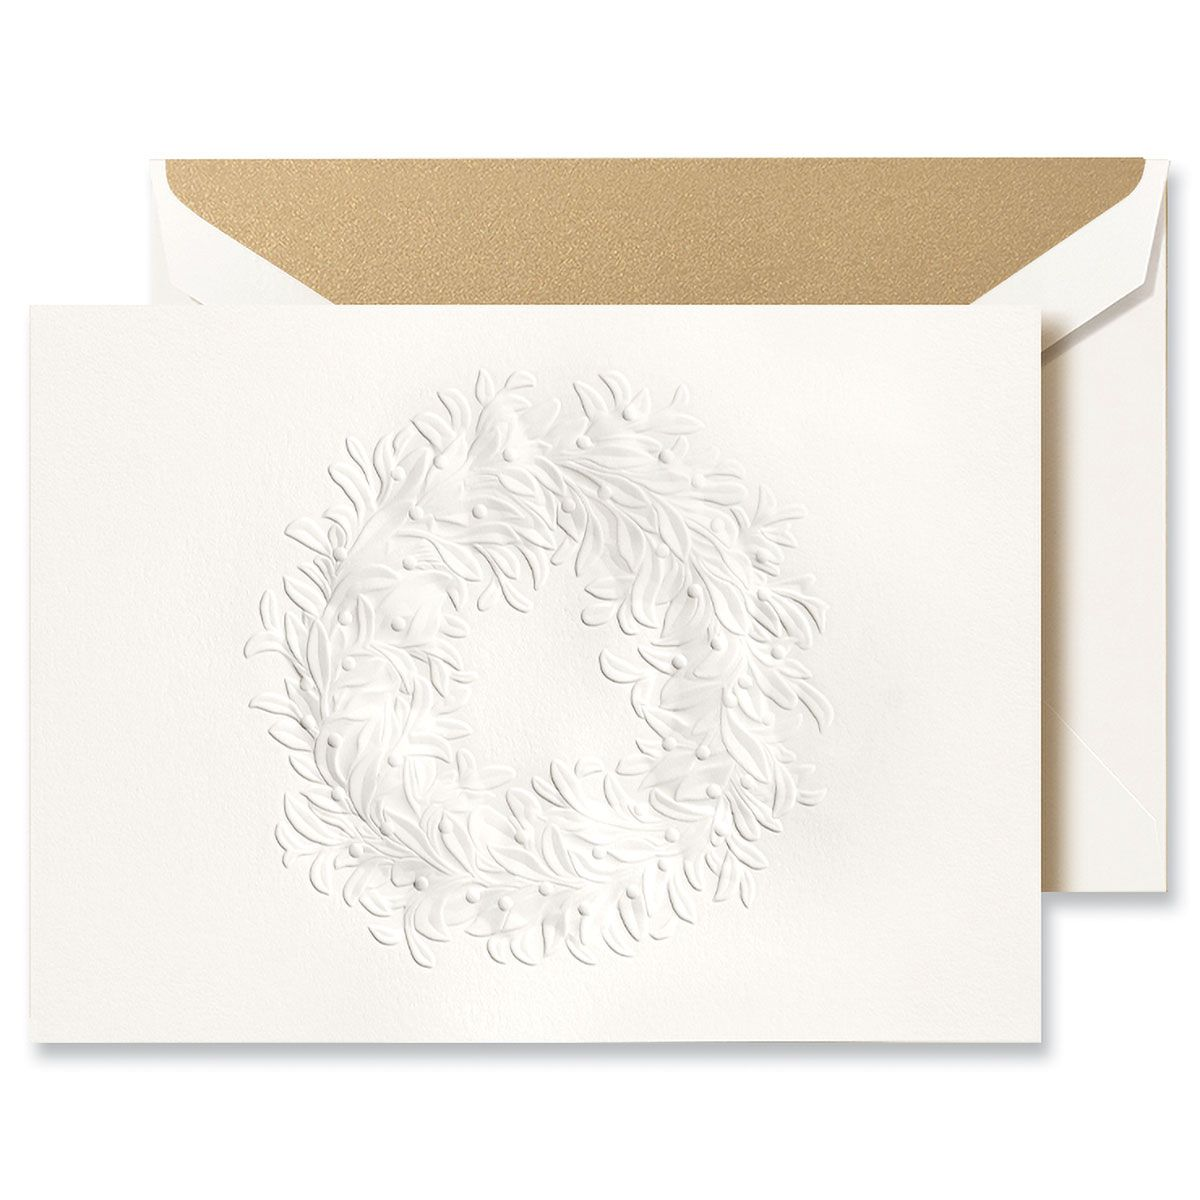 Blind Emboss Wreath Greeting Card